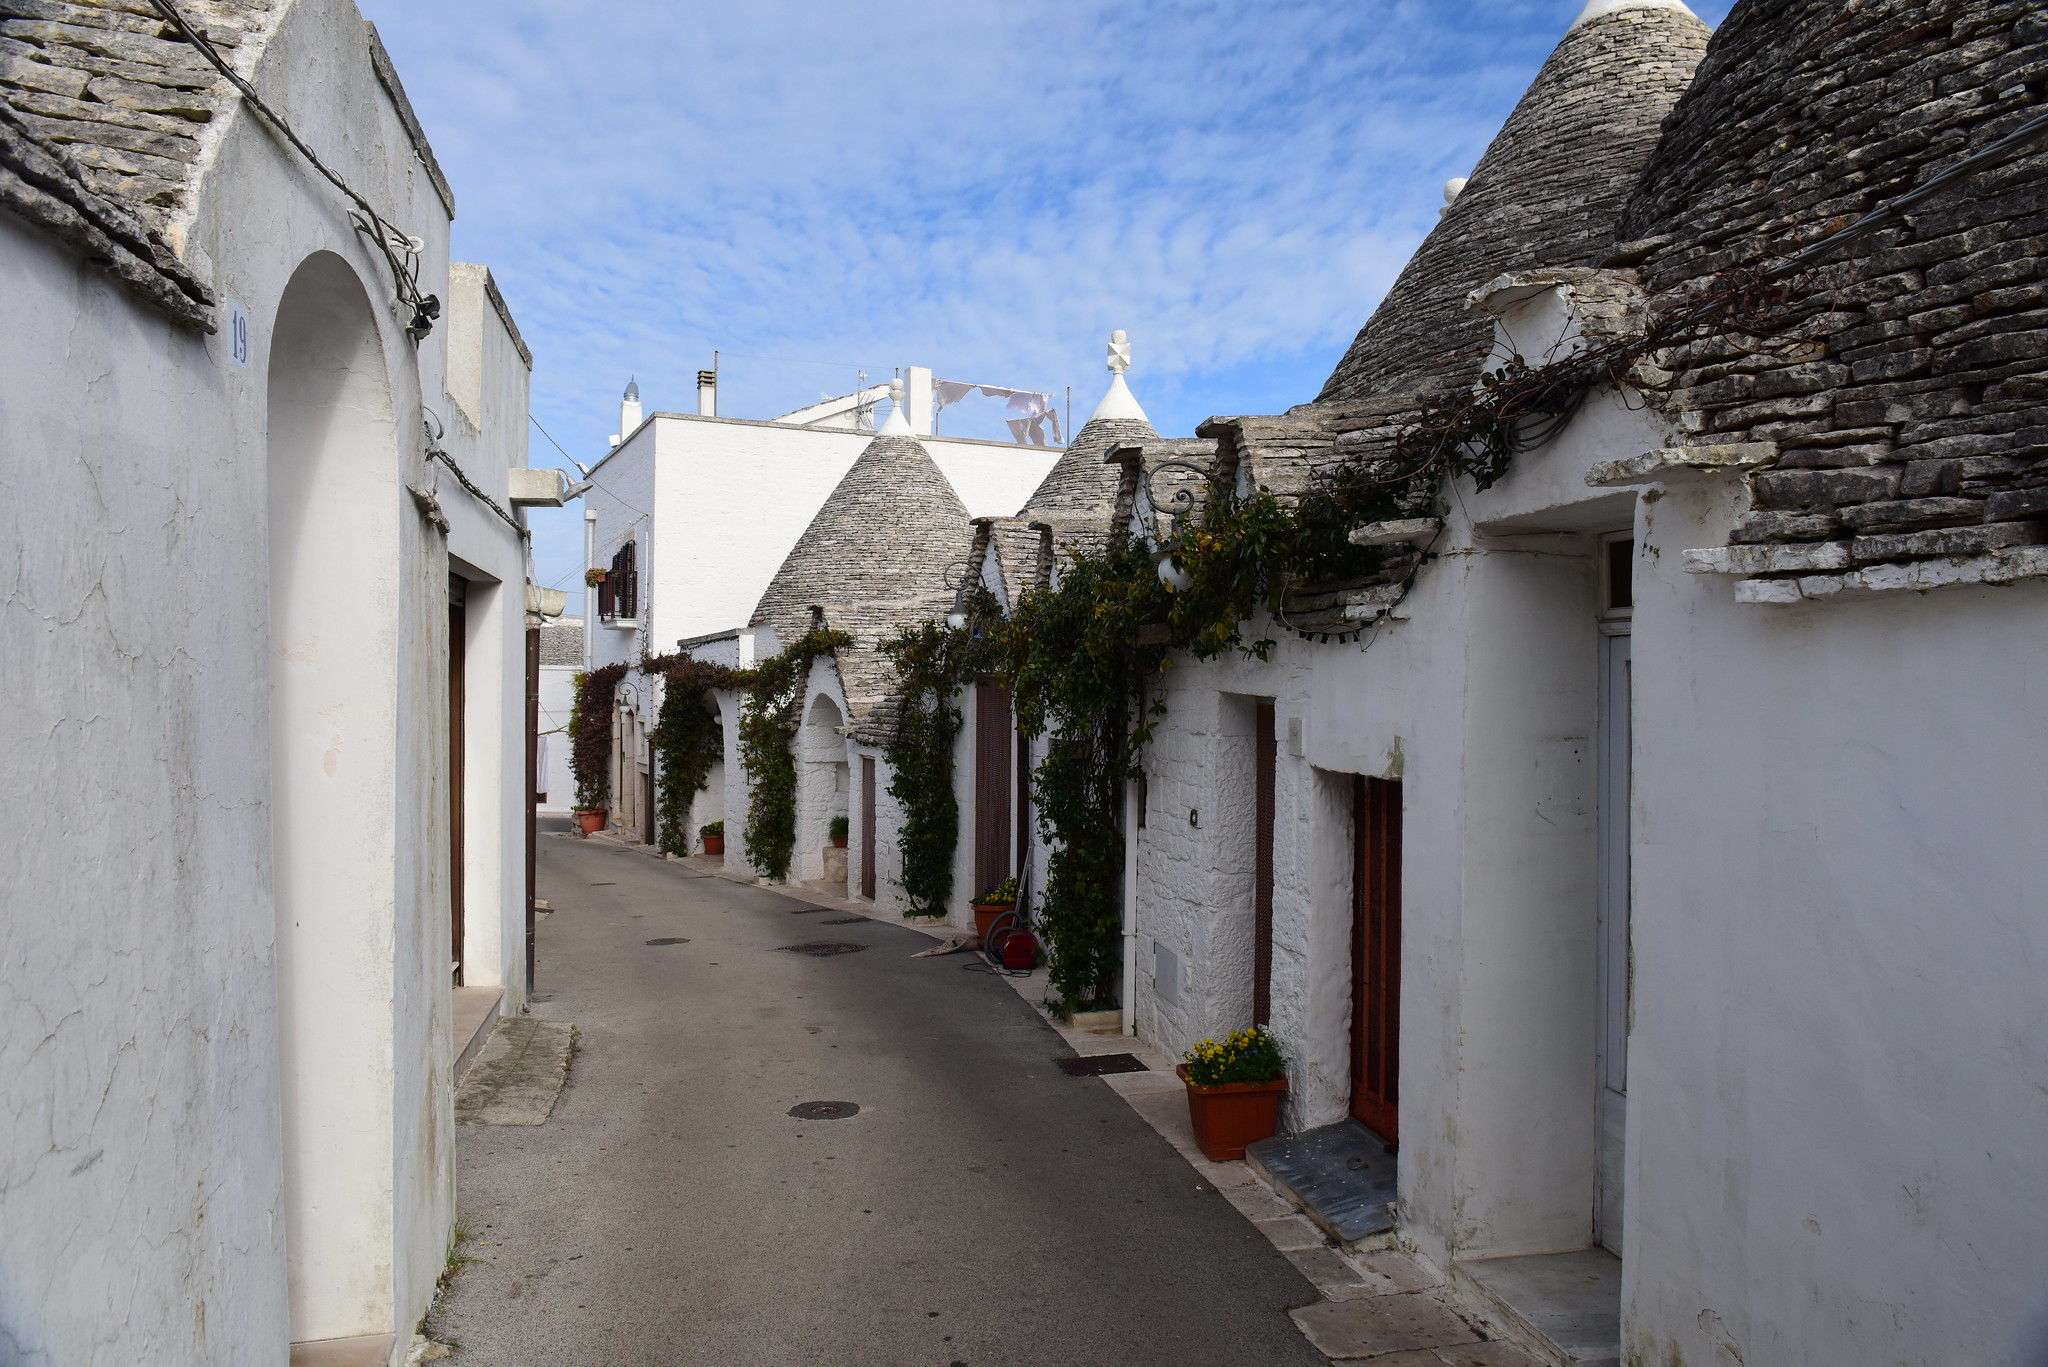 Alberobello, Puglia, Italy, January 2016 1112